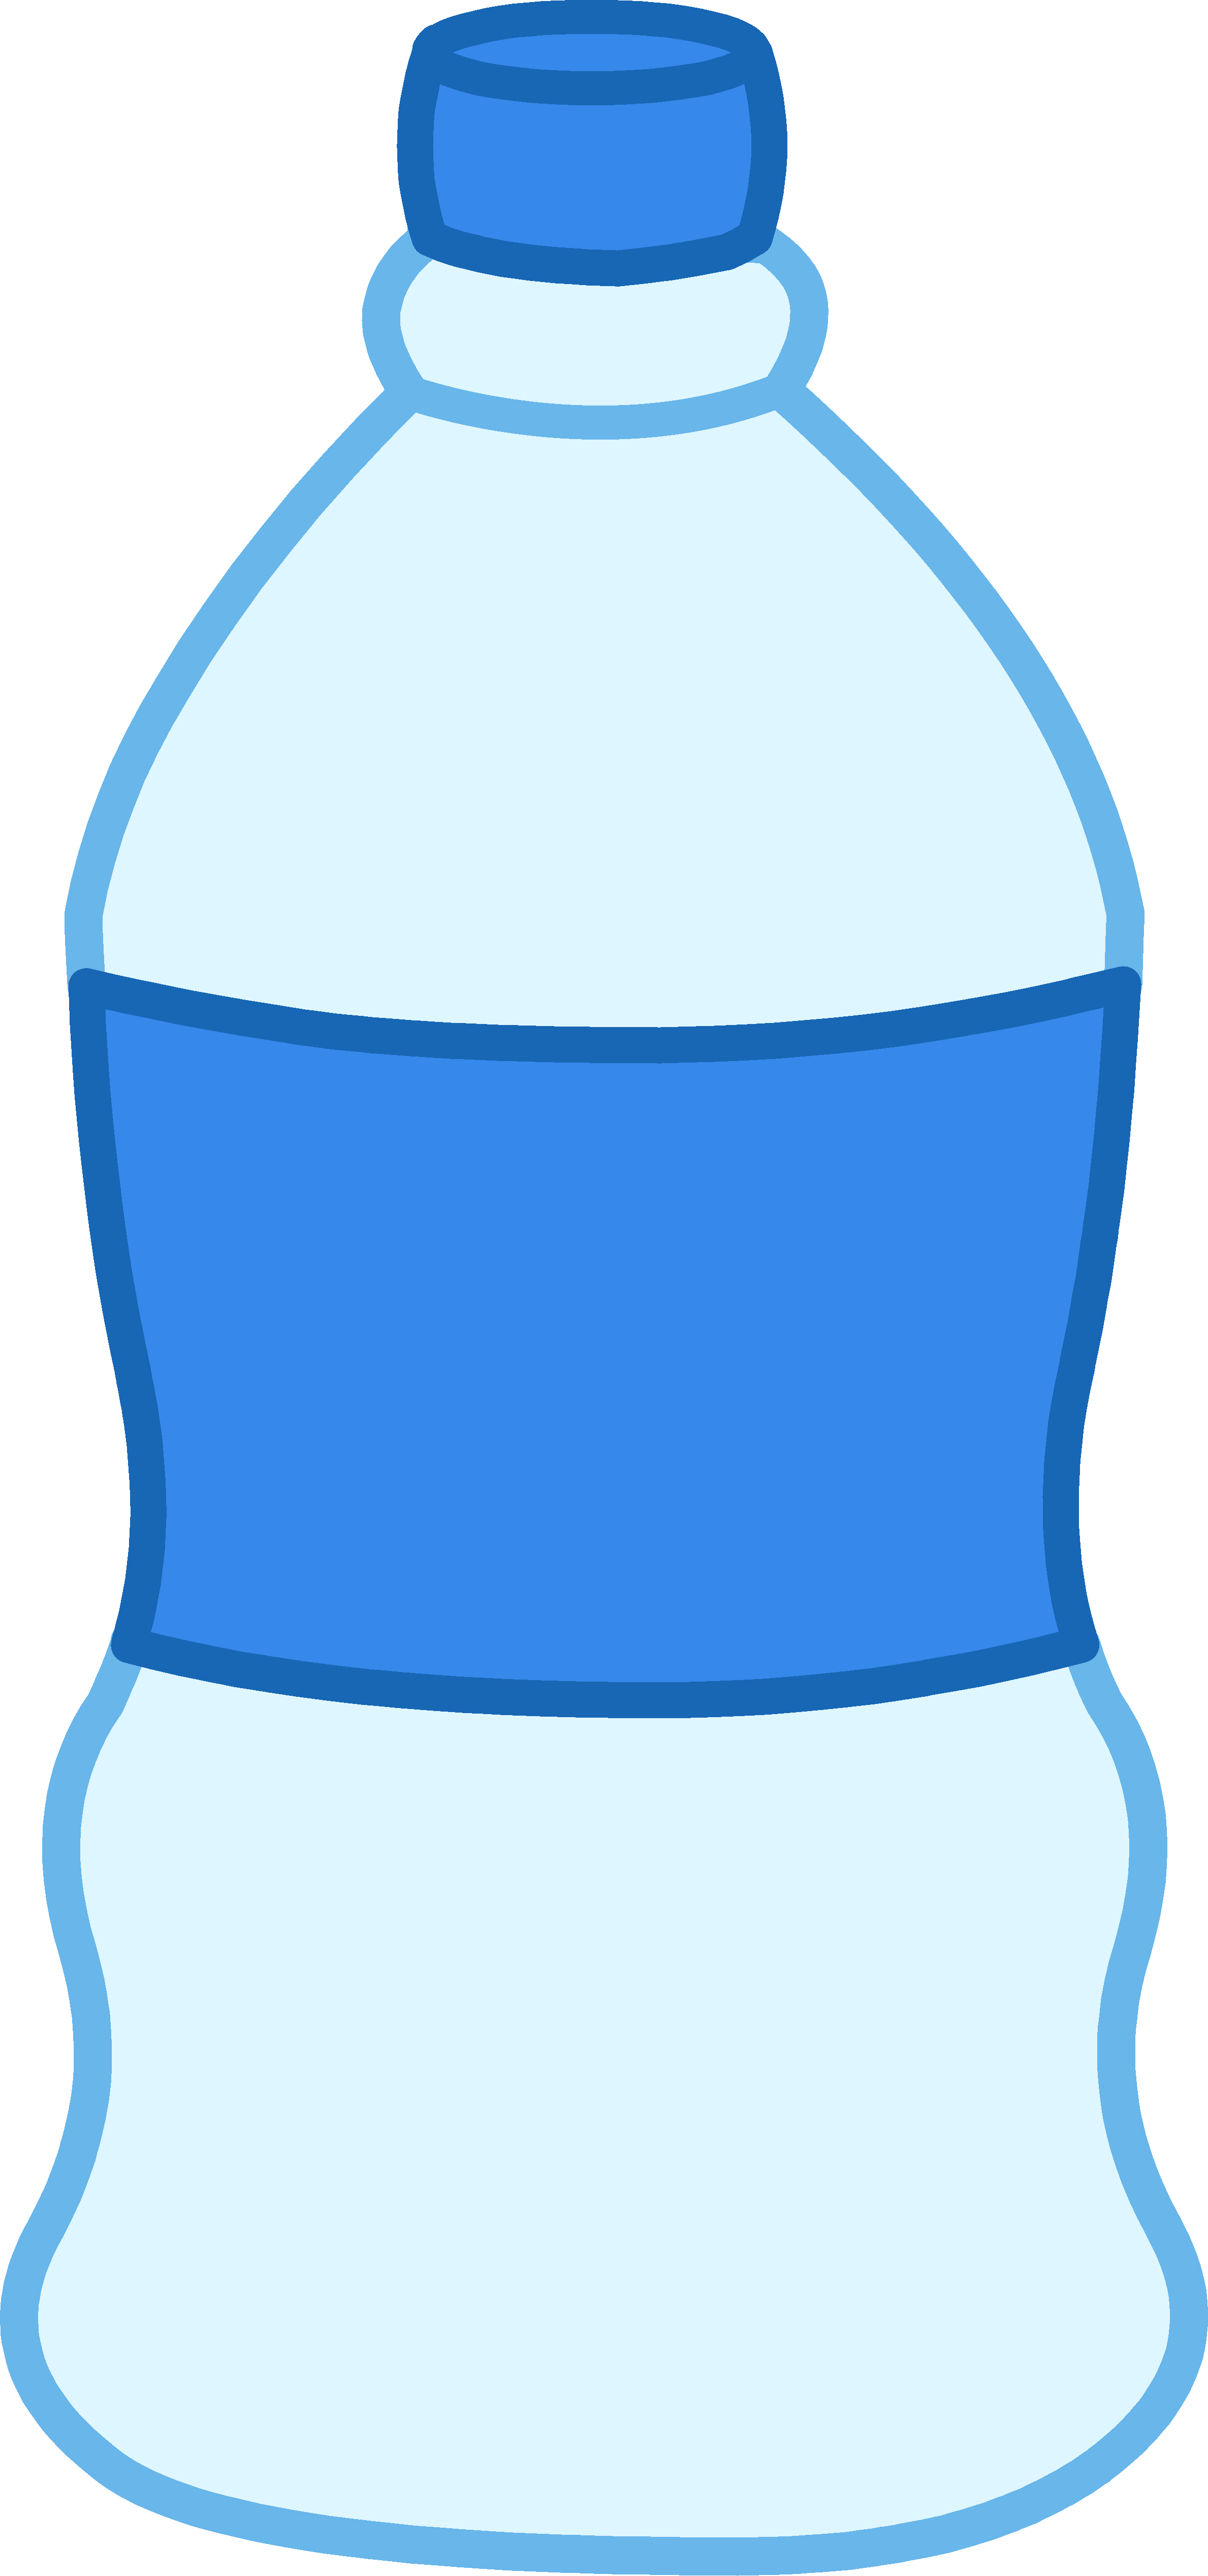 Refill water clipart png.